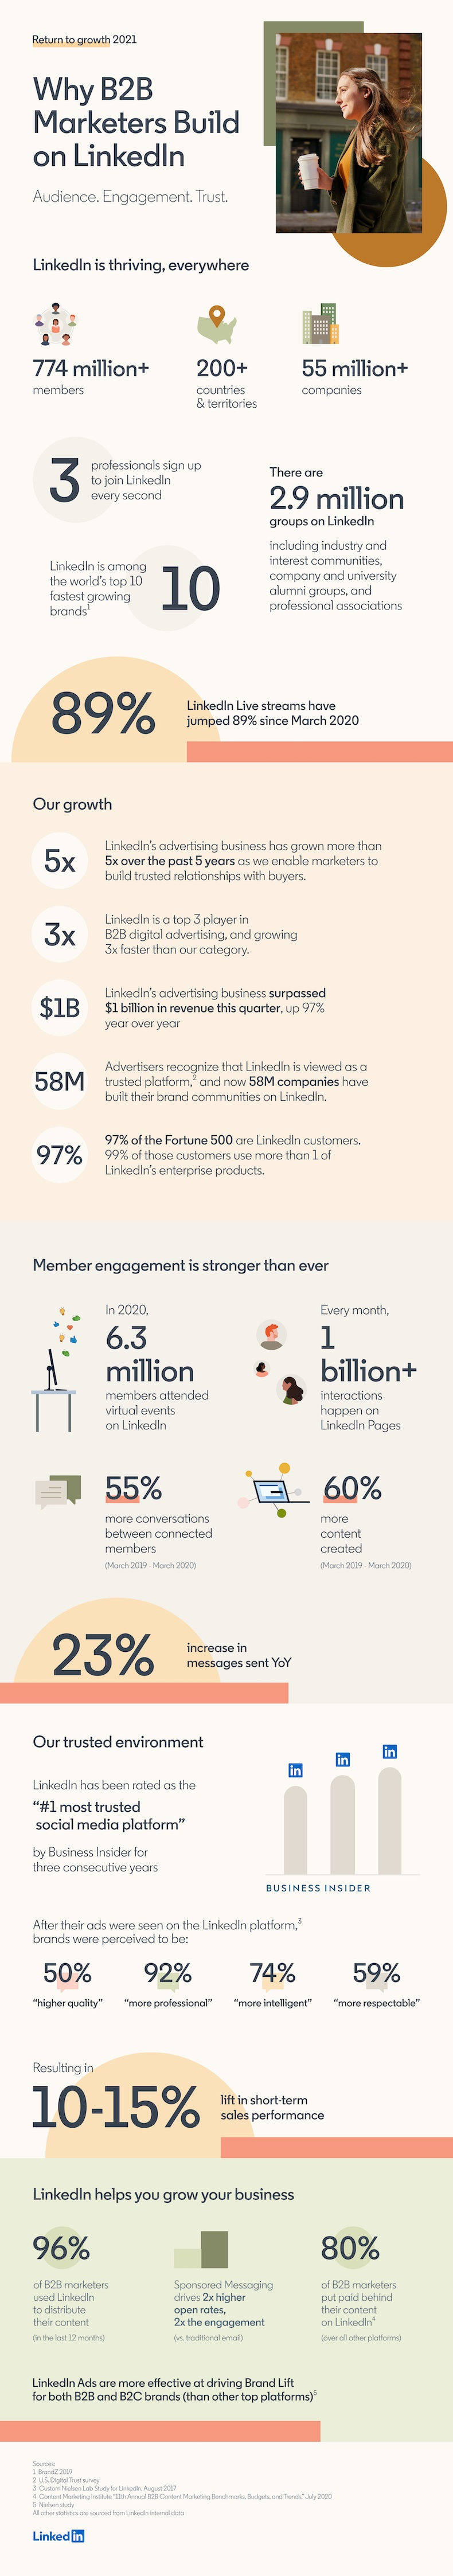 Why B2b marketers build on LinkedIn infographic